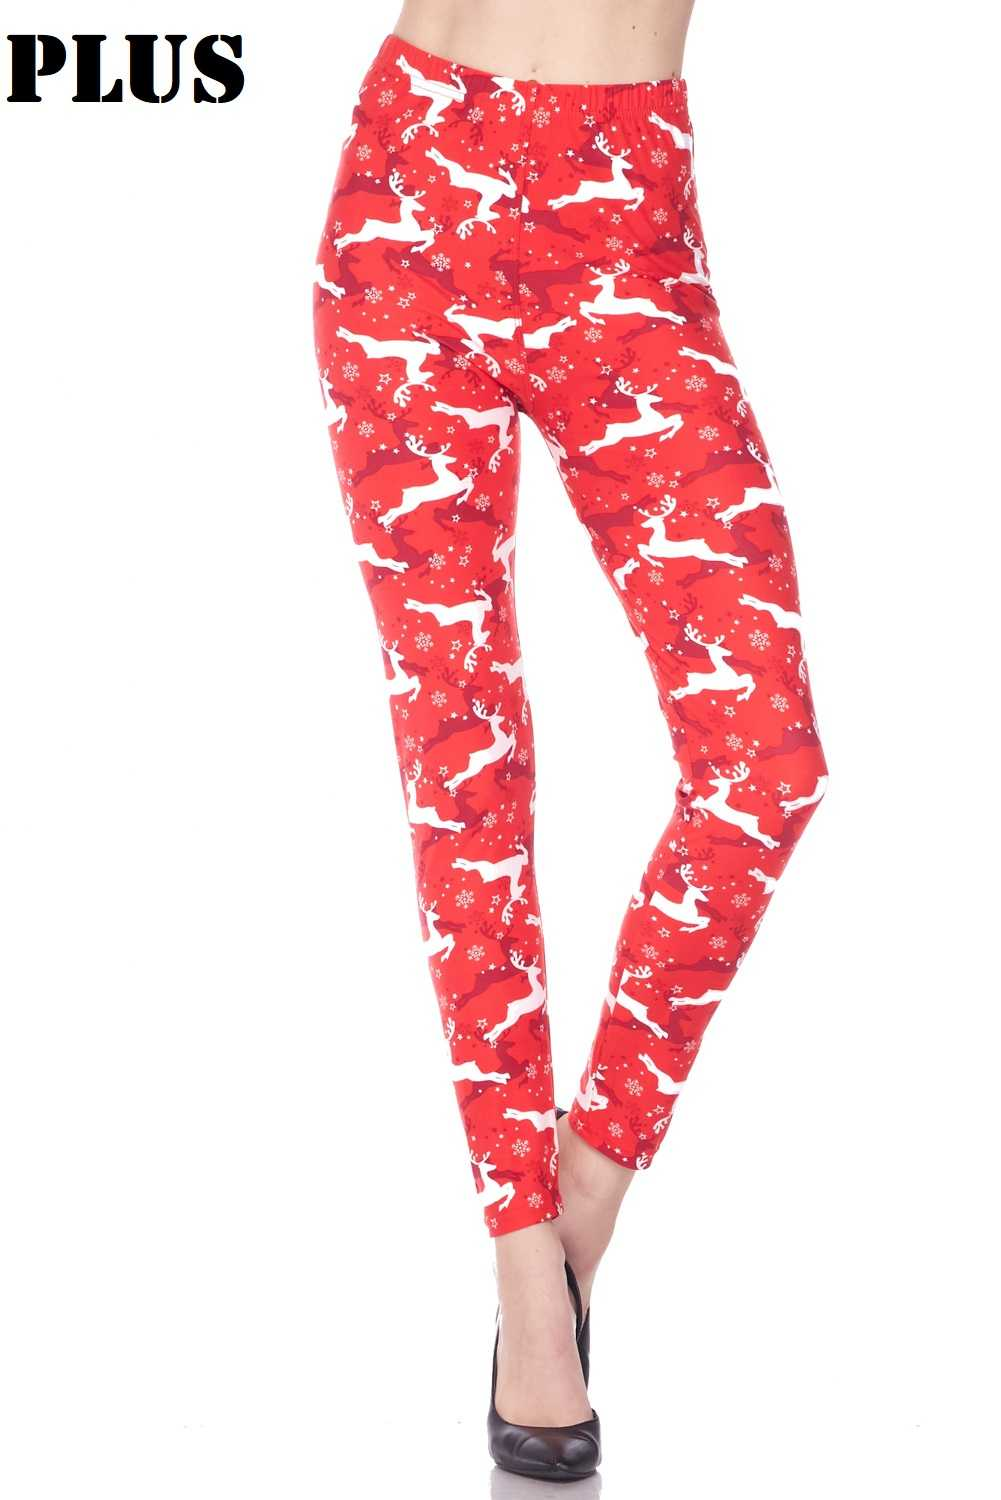 PLUS Christmas Santa Helper Printed Leggings